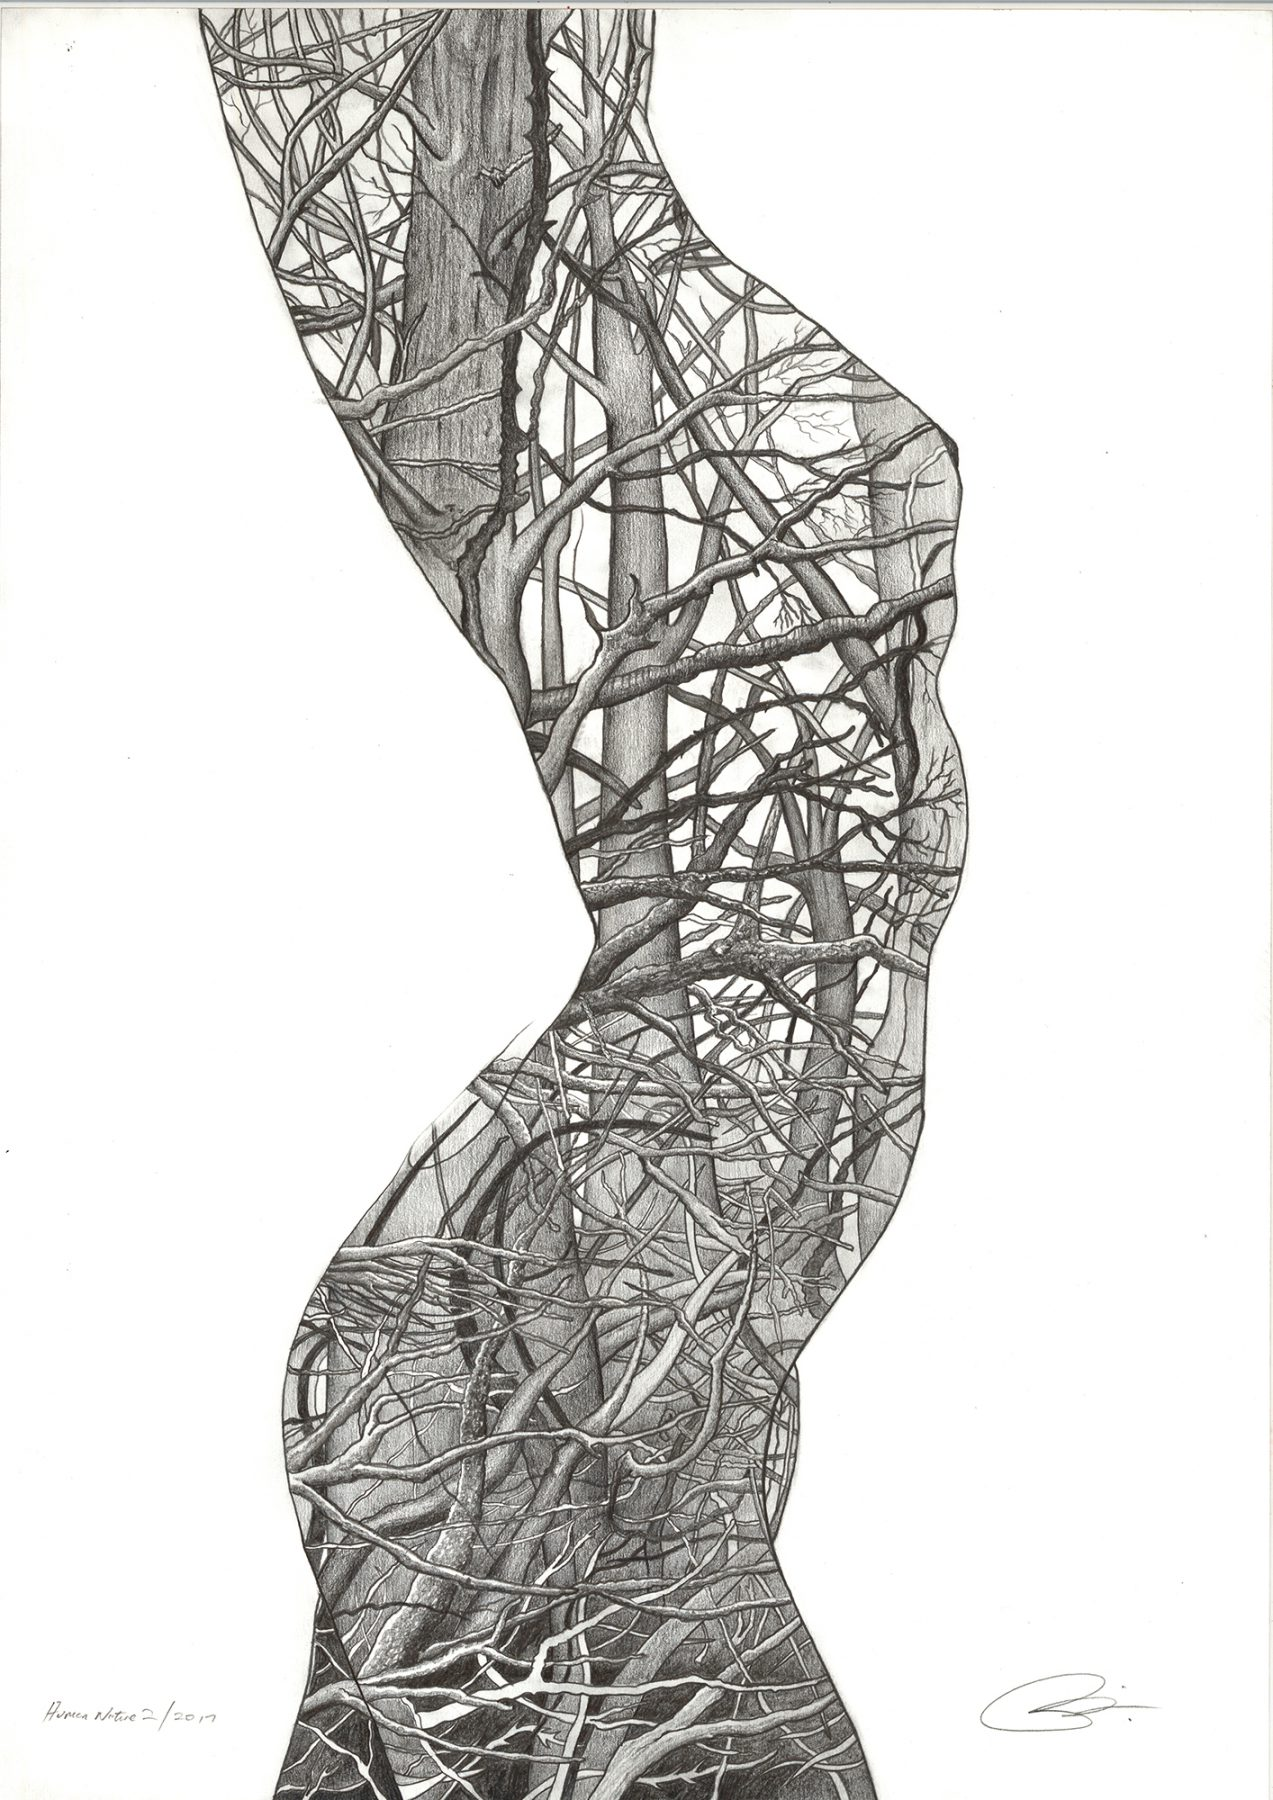 Human Nature 2 | Pencil on 200gsm paper | 42 x 59.4 cm | SOLD